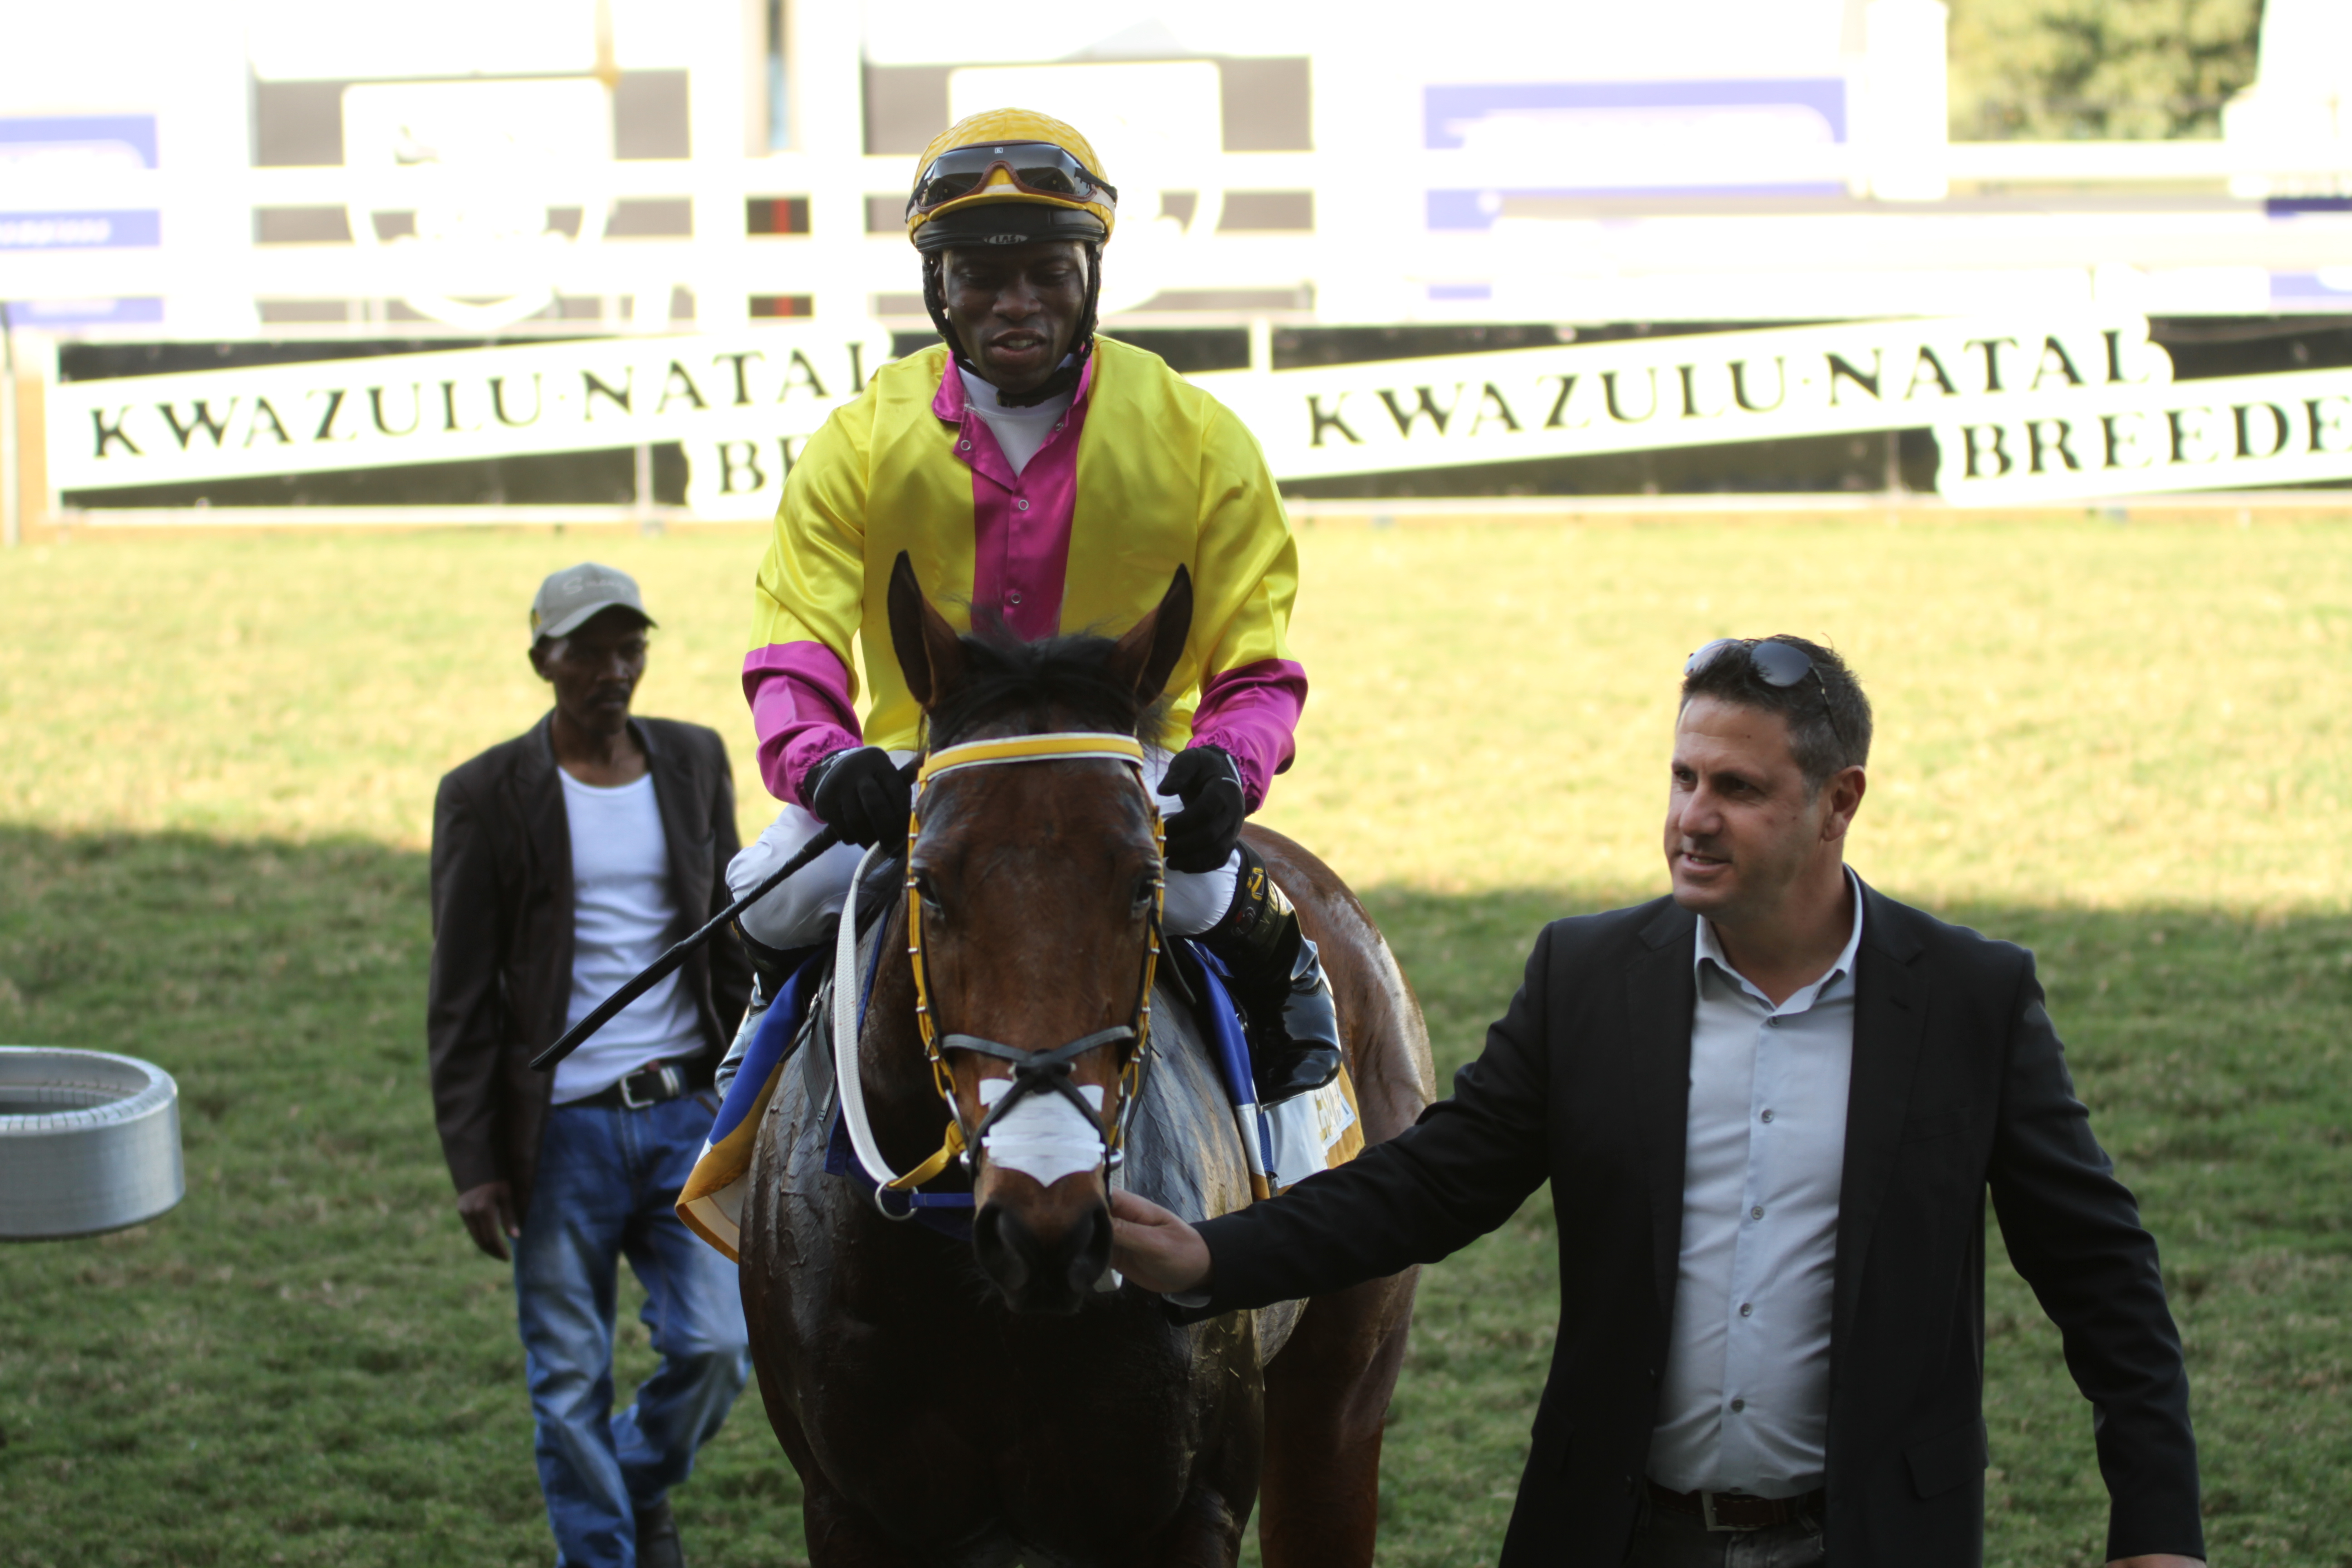 SA's champion trainer Sean Tarry won six of the nine races carded (including the Million Mile) on KZN Breeders Million Mile day in 2017. He says he plans his KZN-bred horses campaigns each year for the KZN Breeders race day. Image: Candiese Marnewick